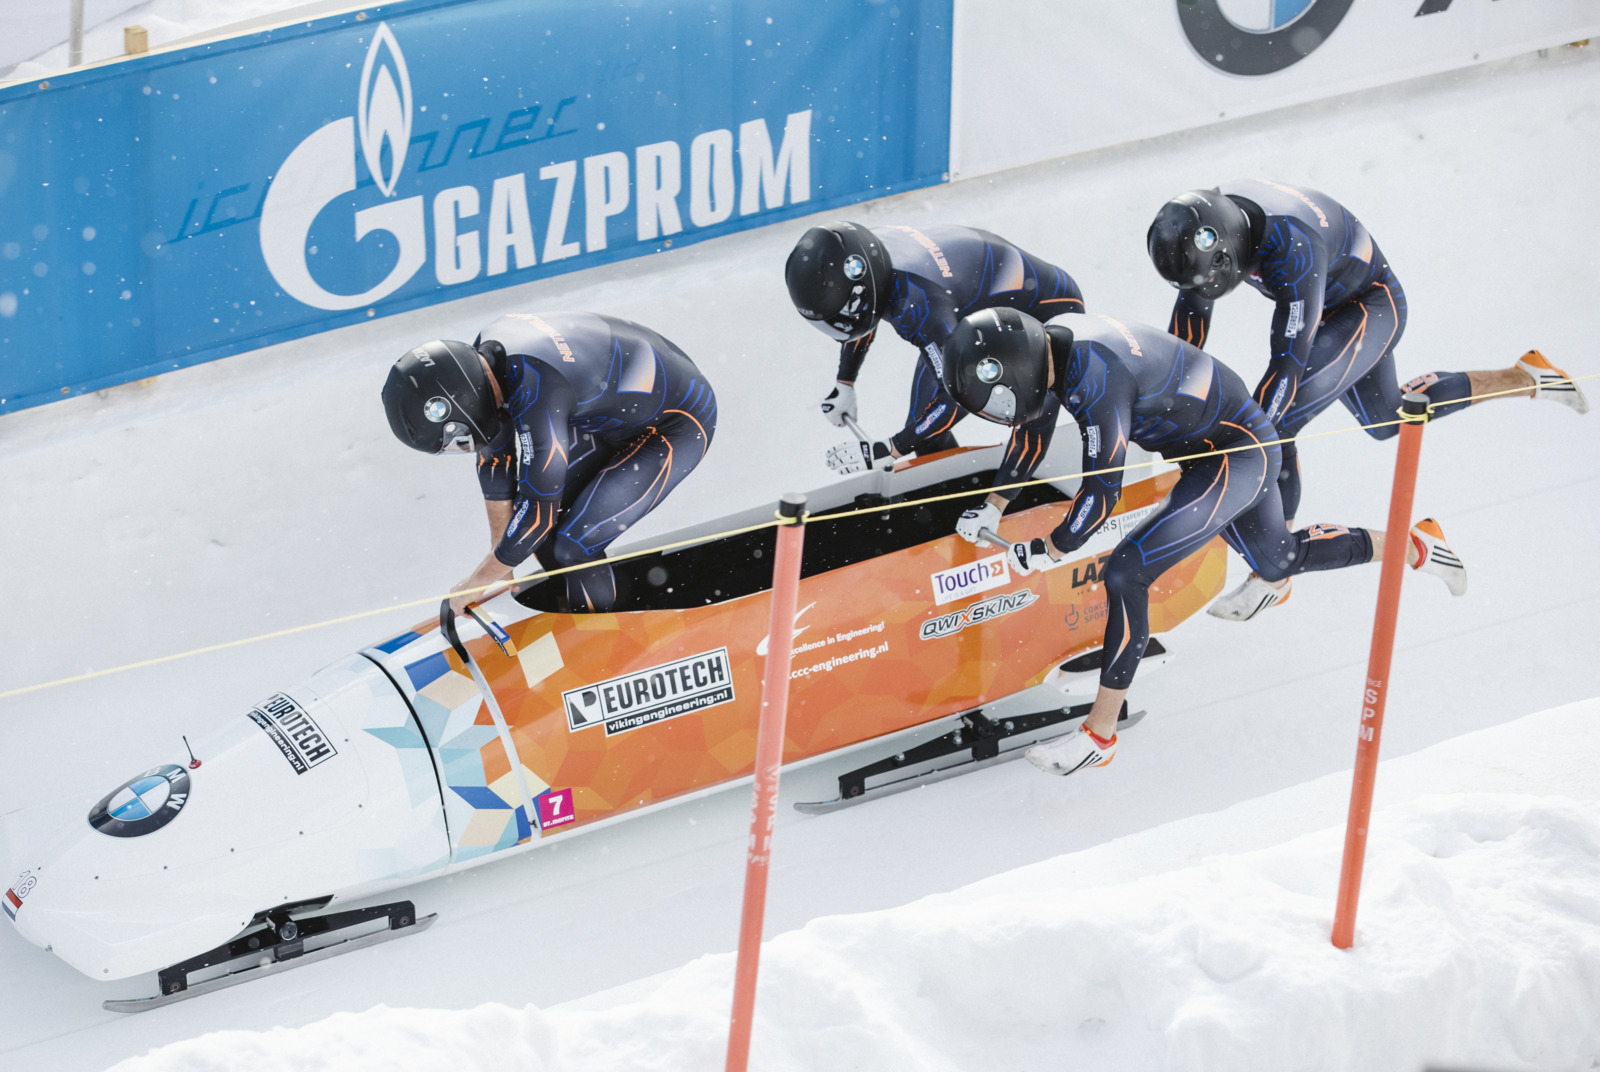 Bob Run: 4-man bobsleigh race